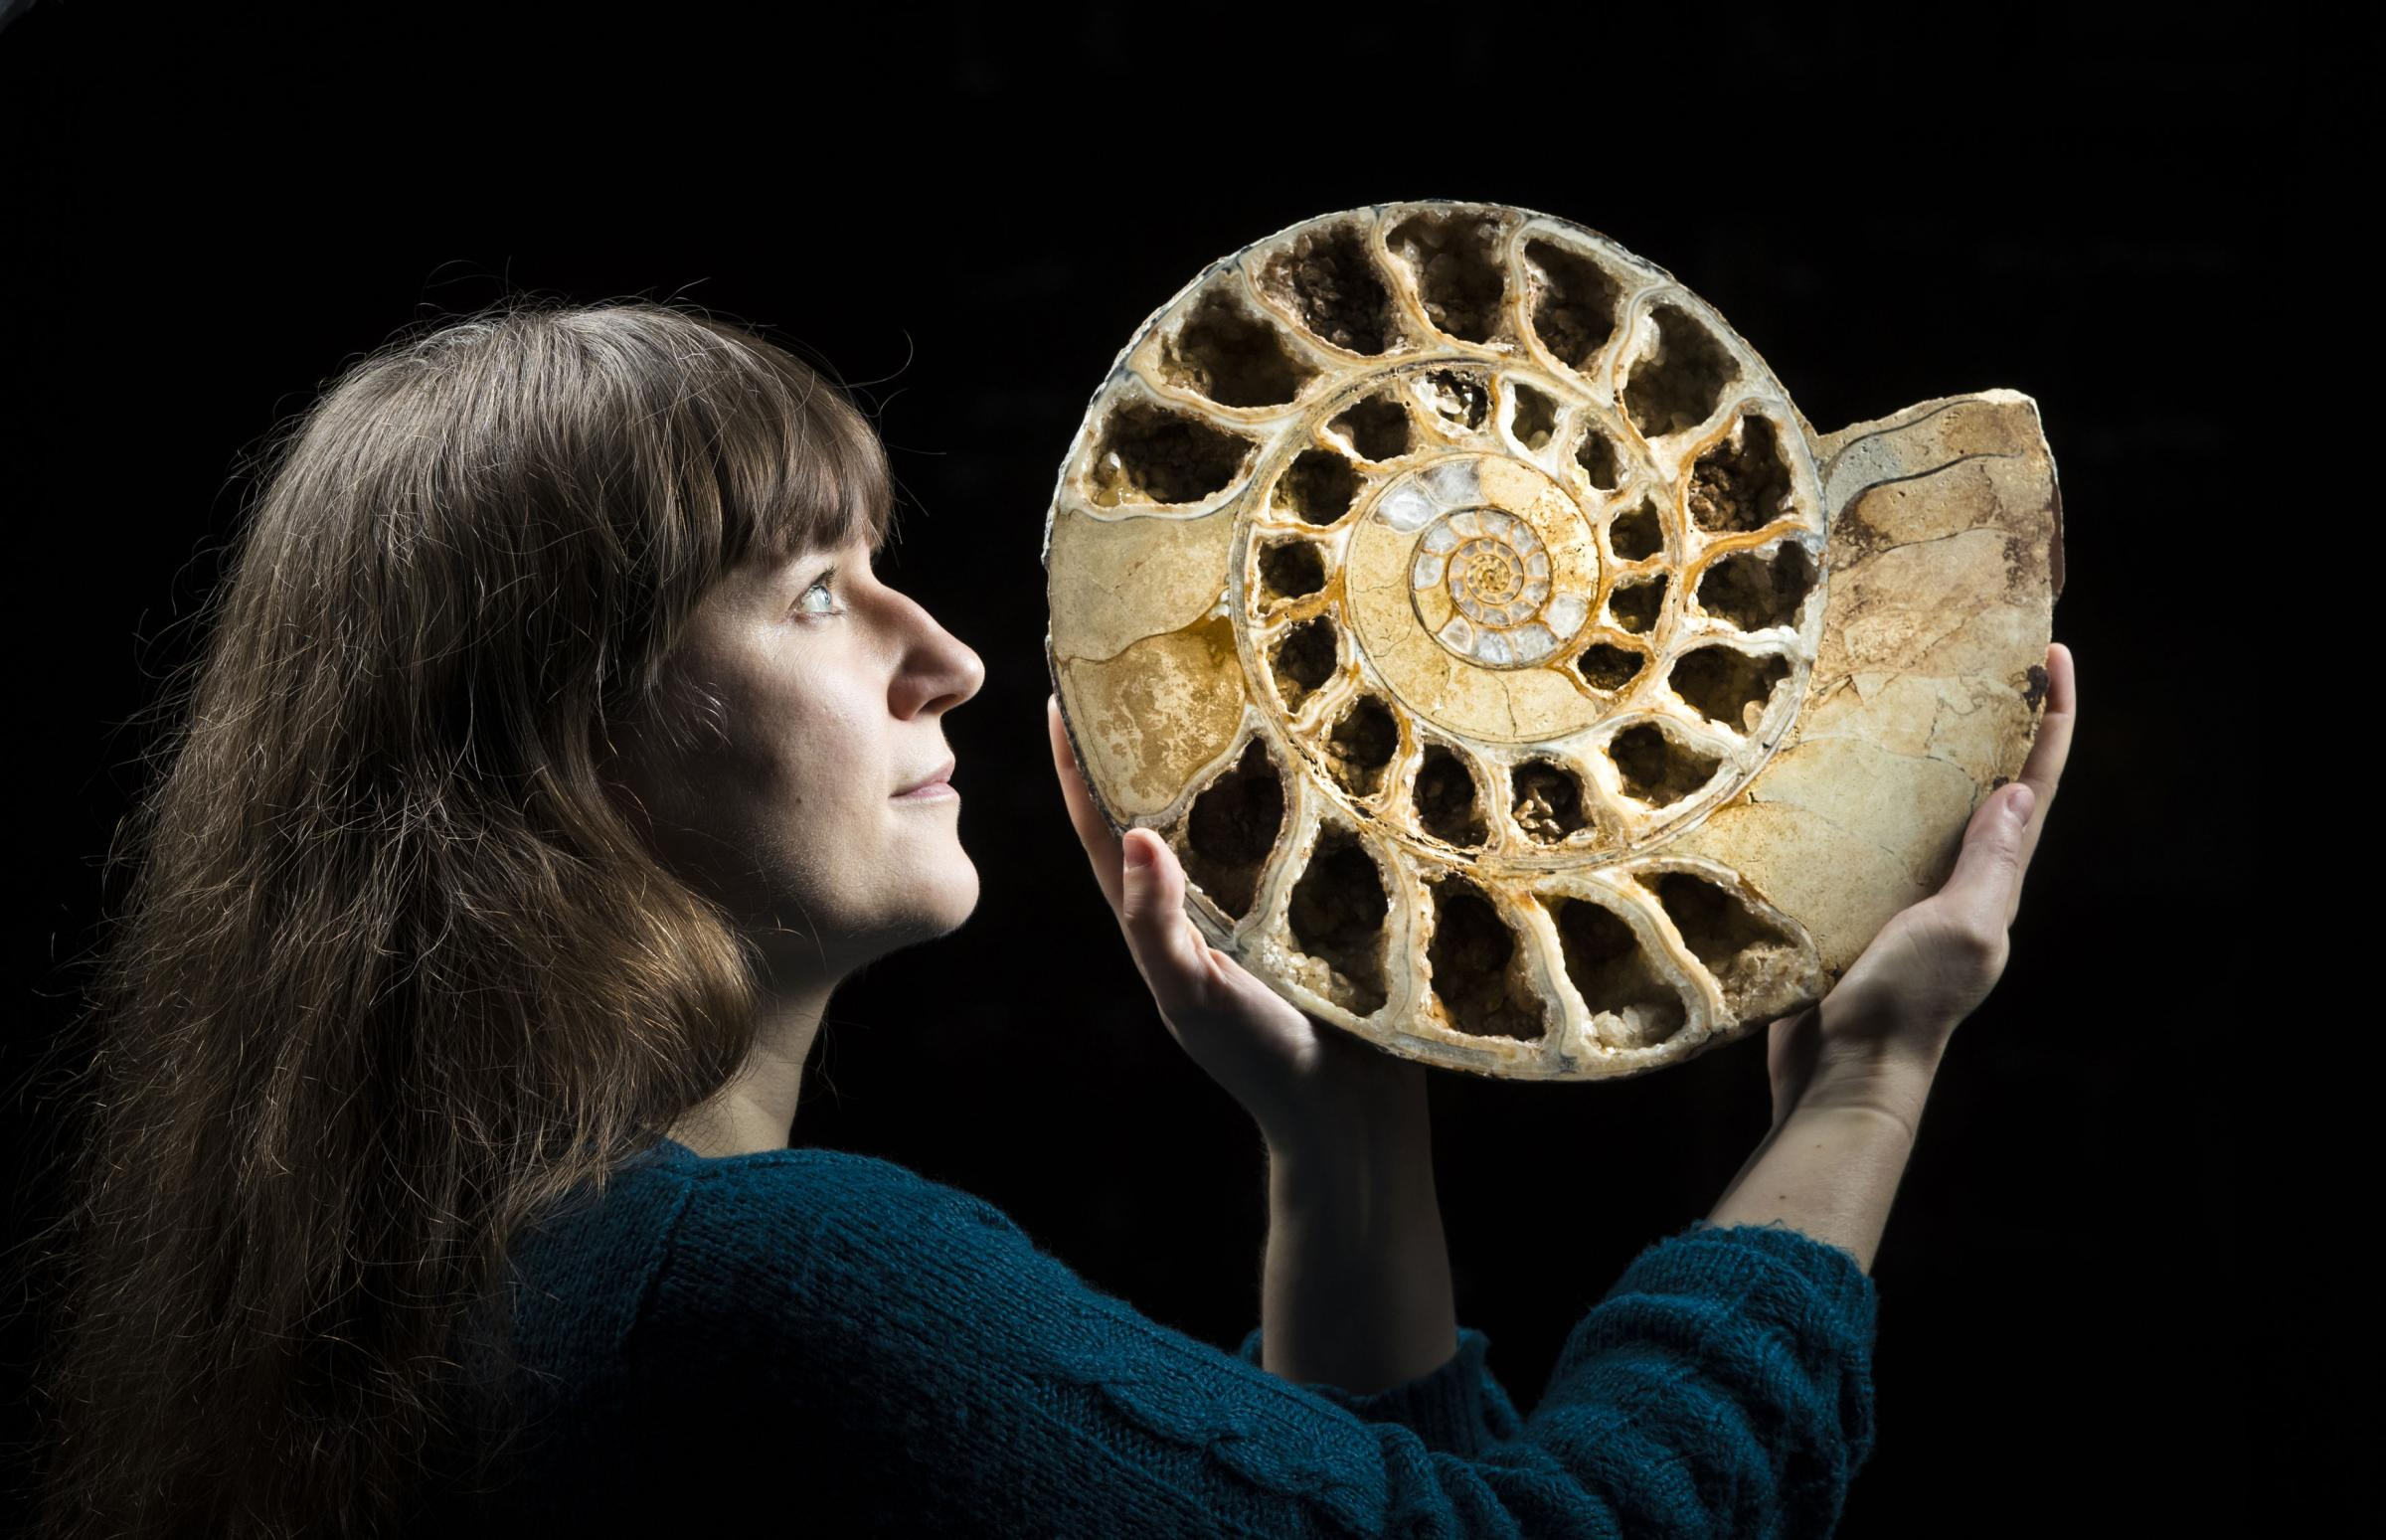 ANCIENT: Sarah King, curator of natural science at the Yorkshire Museum in York, holds a 170 million year old ammonite fossil